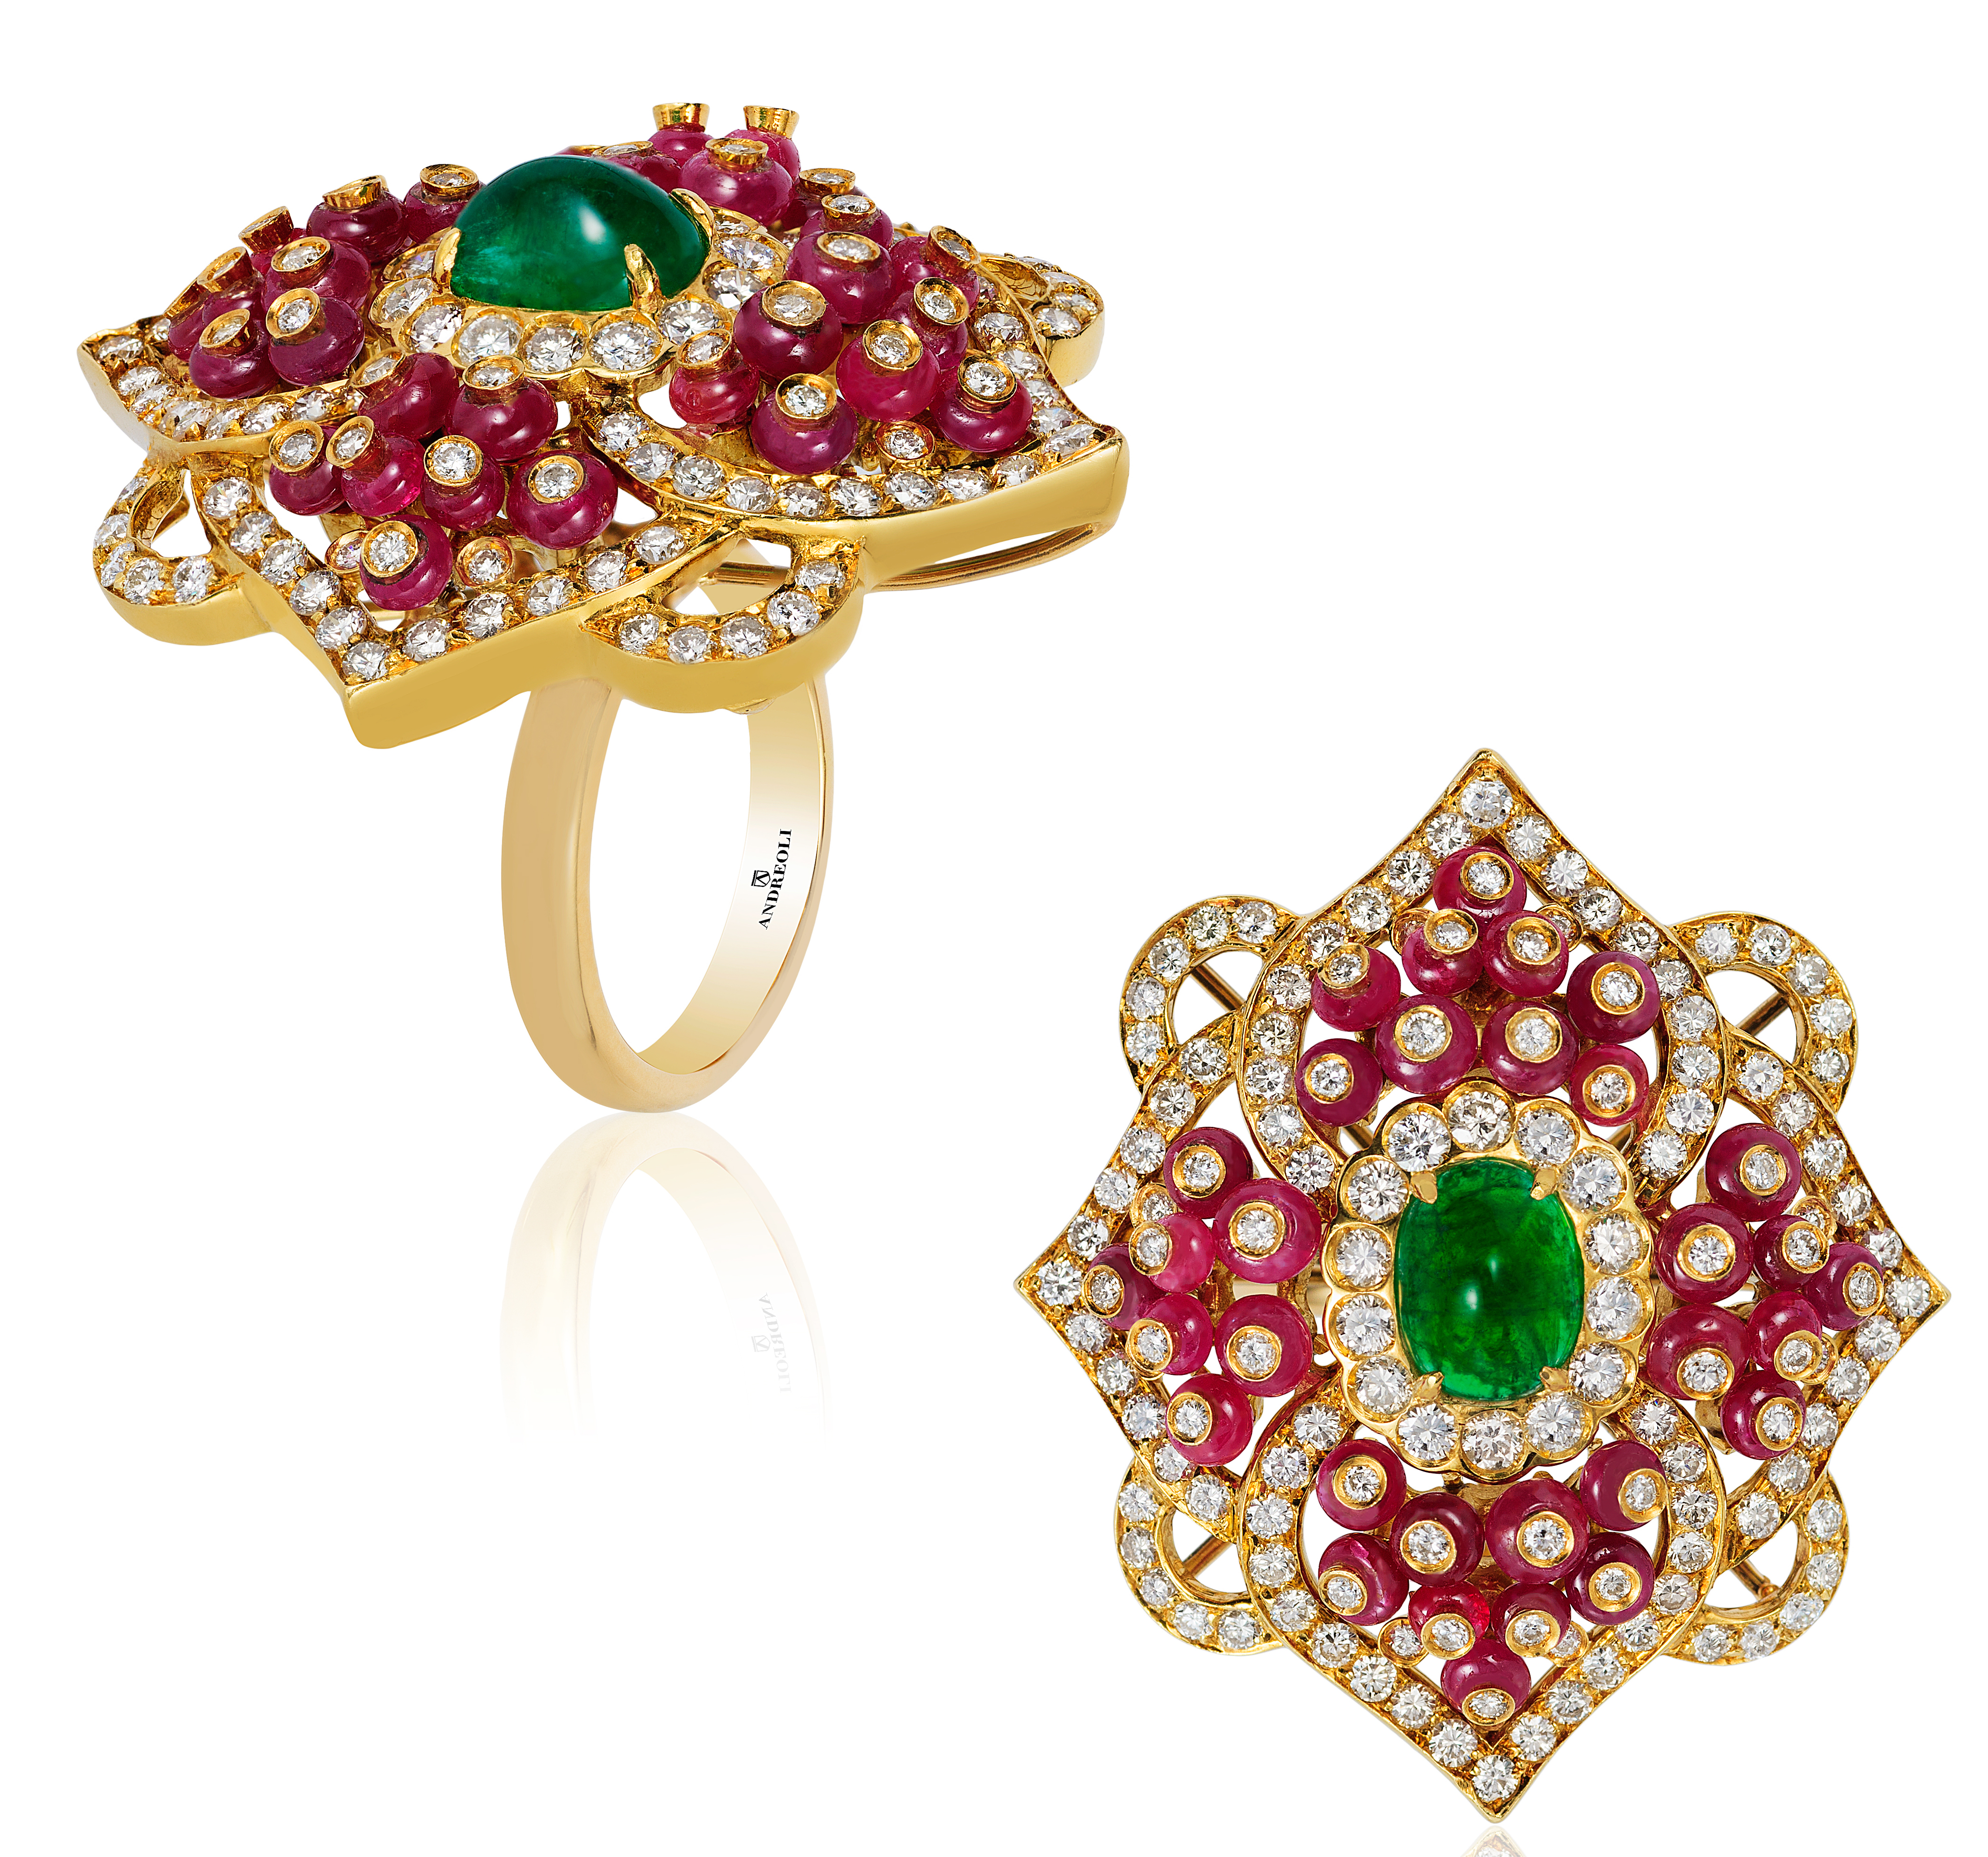 Andreoli ruby and emerald ring | JCK On Your Market